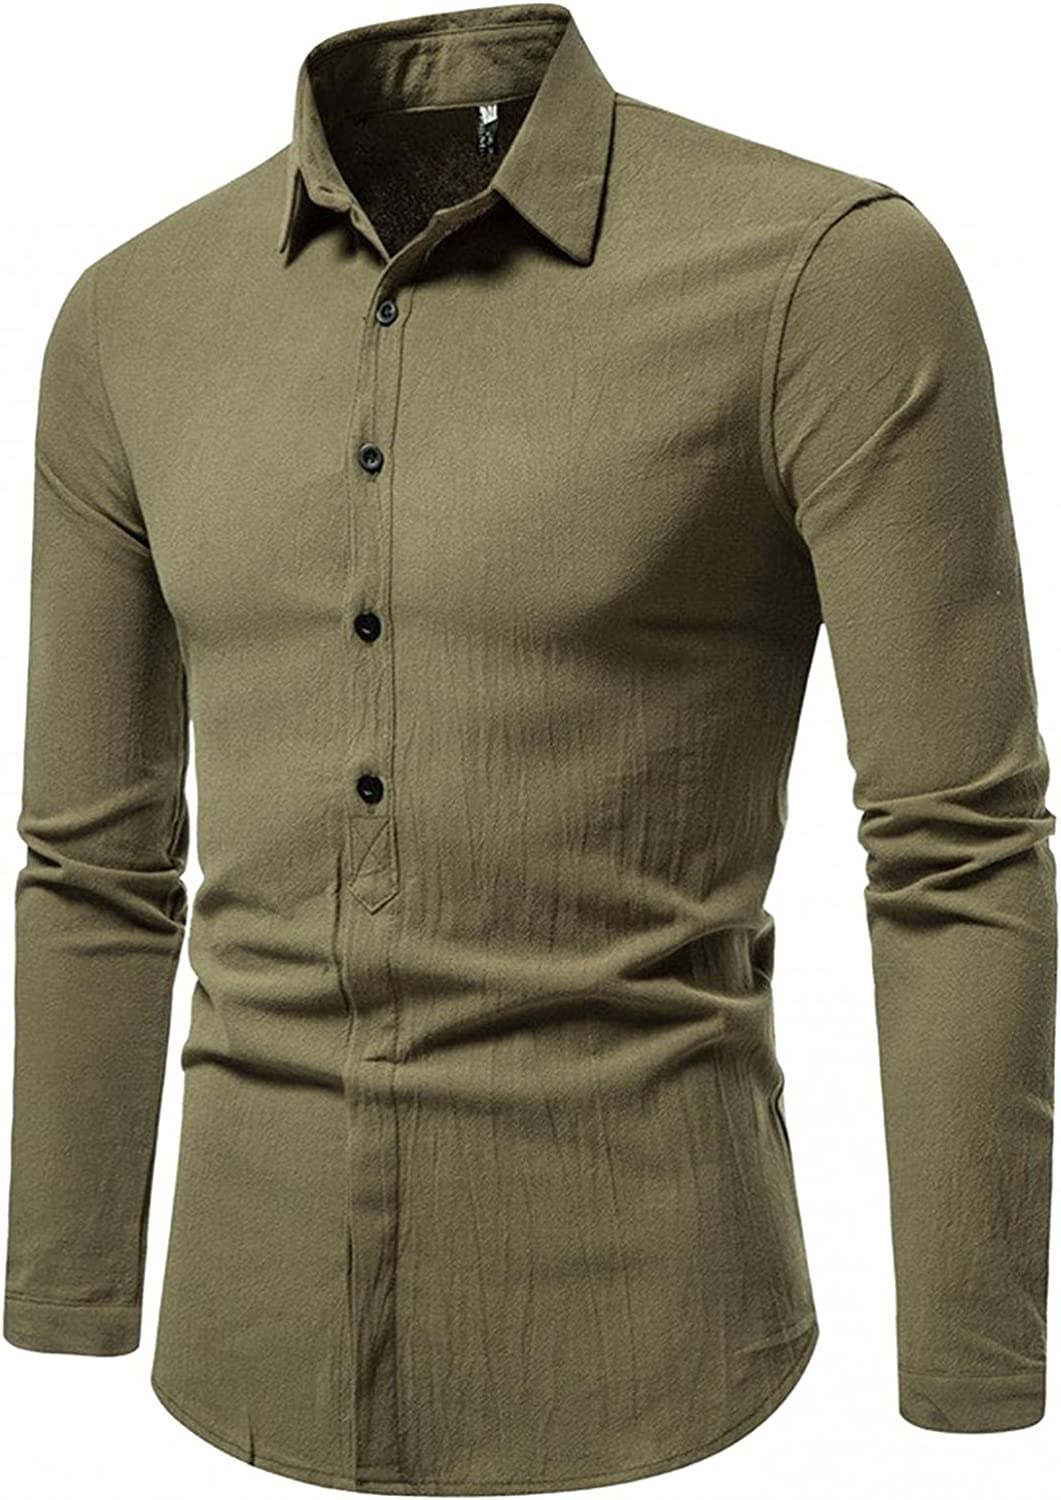 FUNEY Mens Slim Fit Long Sleeve Tuxedo Dress Shirts Hipster Casual Plain Half Covered Button Turn-Down Collar Shirt Tops